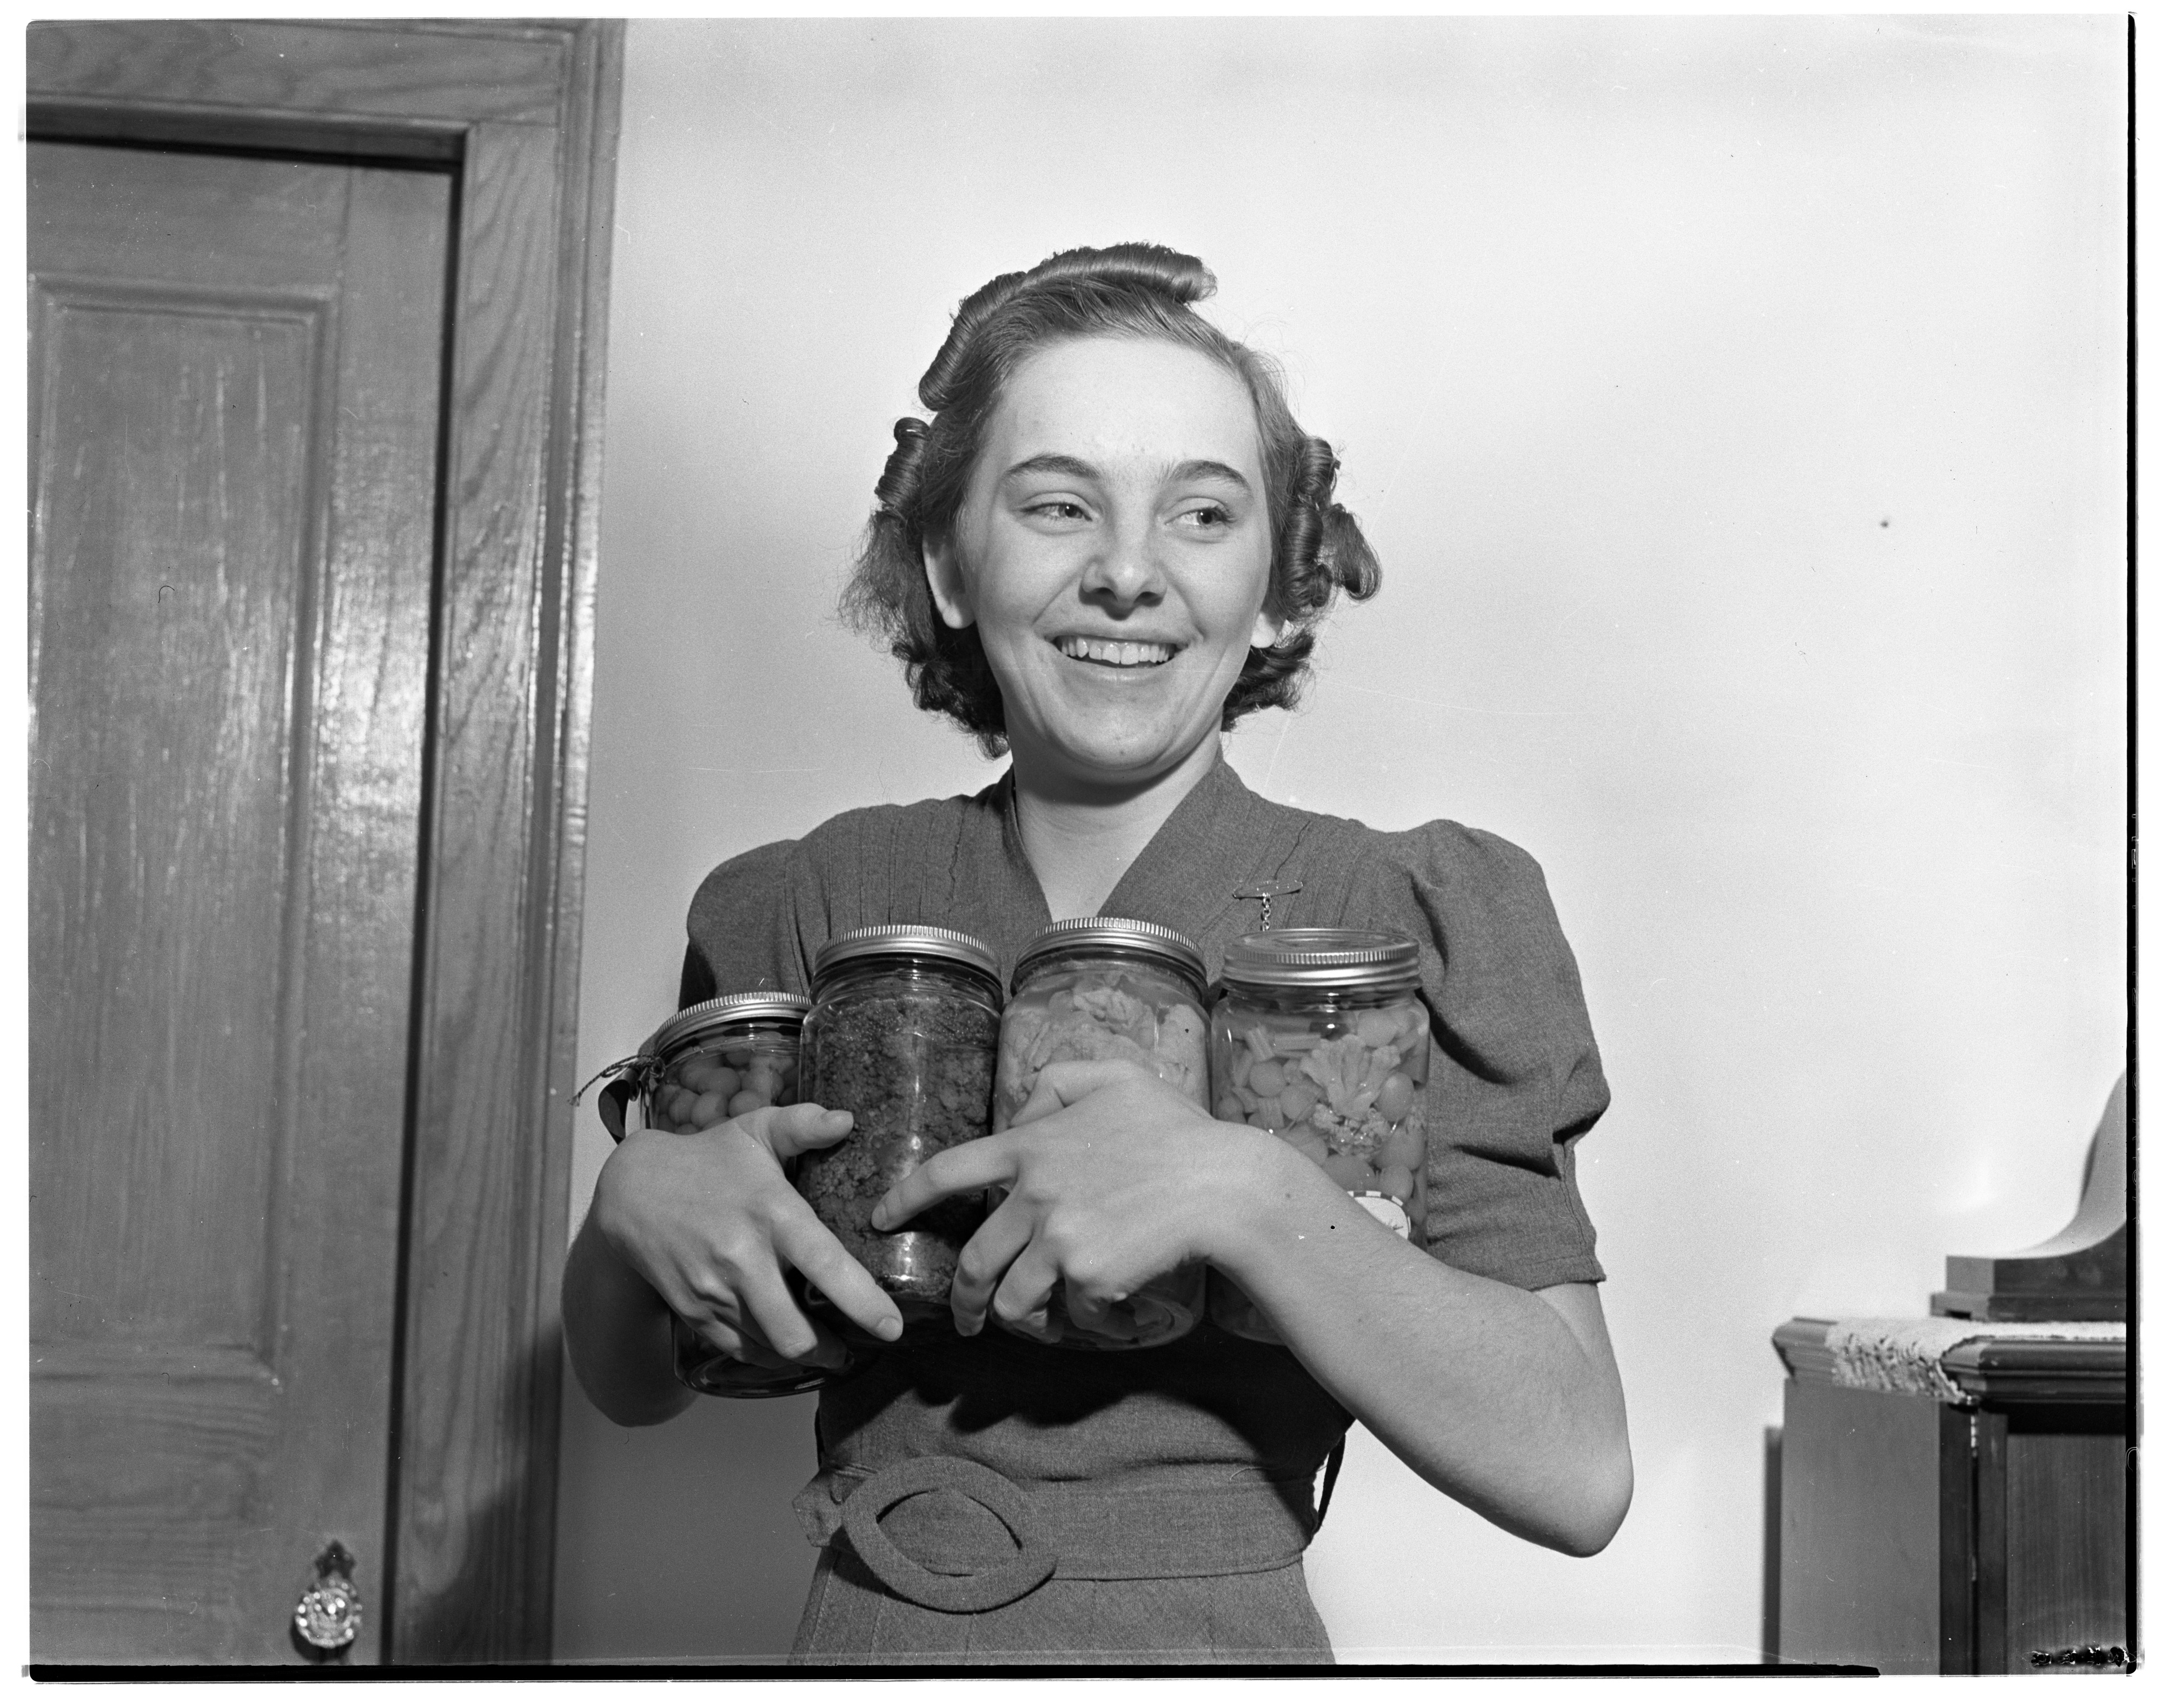 Faith McCrory, 4-H Canning Champion, November 1938 image